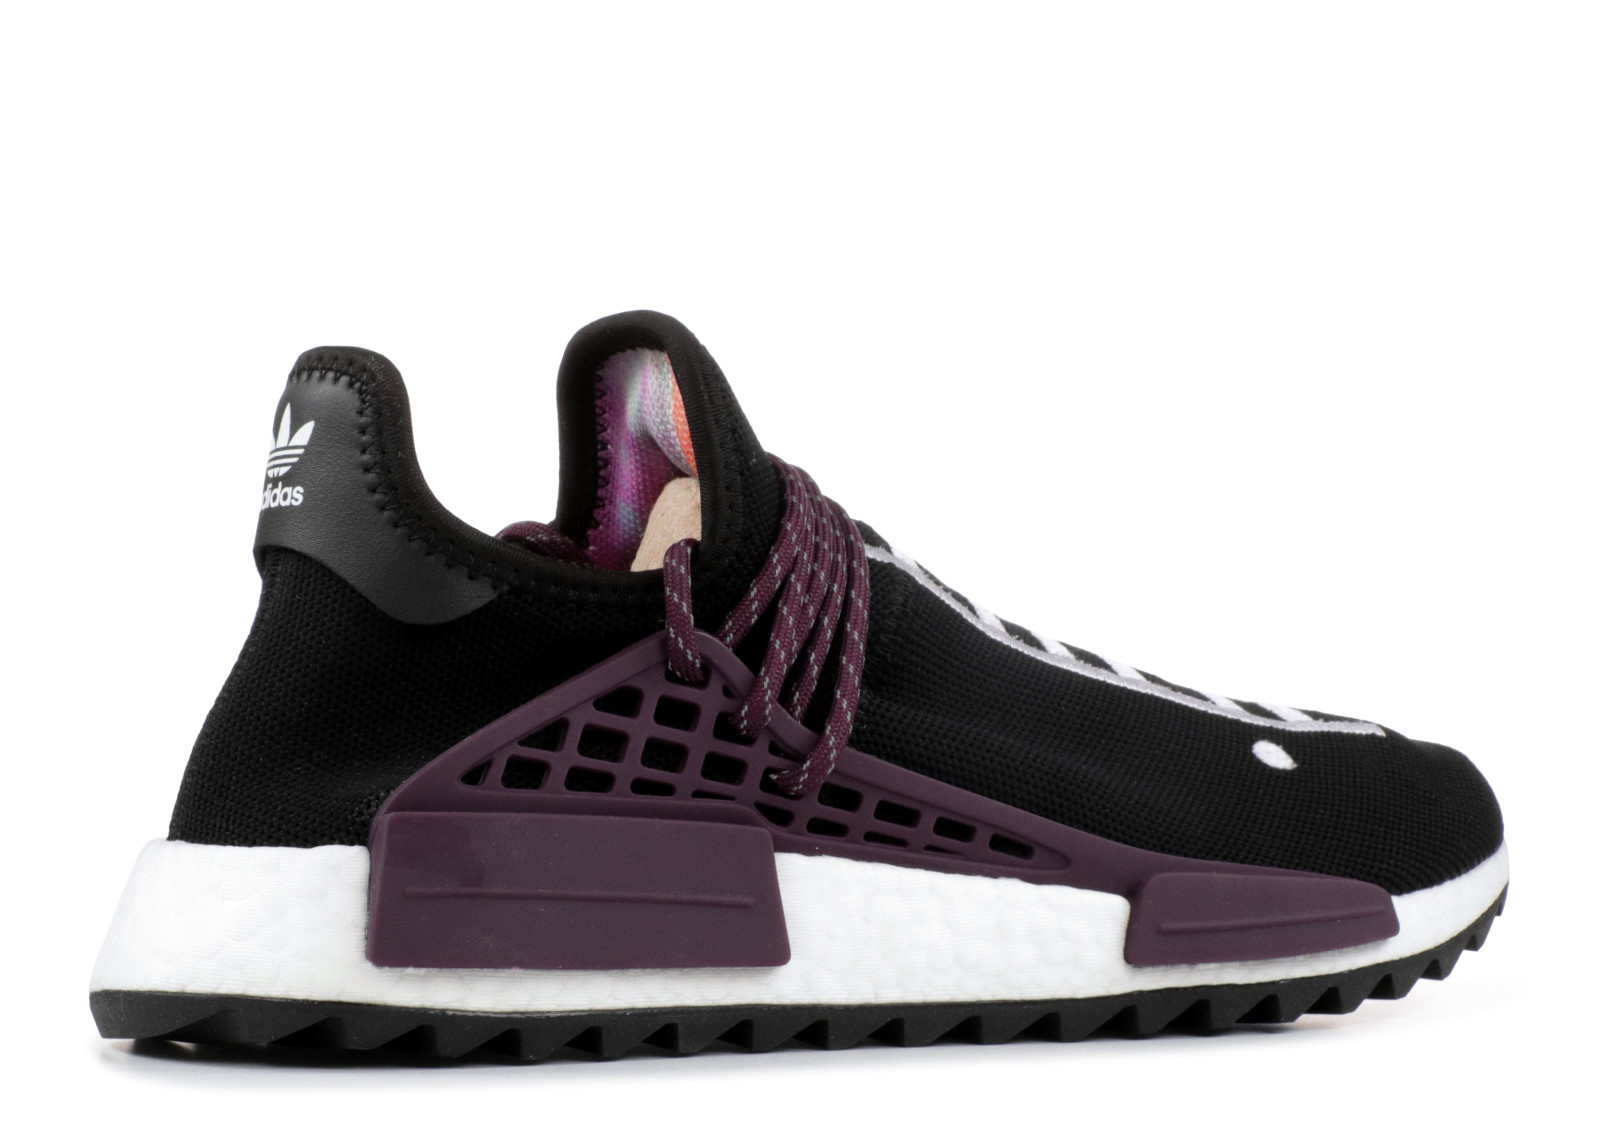 PW HUMAN RACE HOLI NMD MC EQUALITY image 3